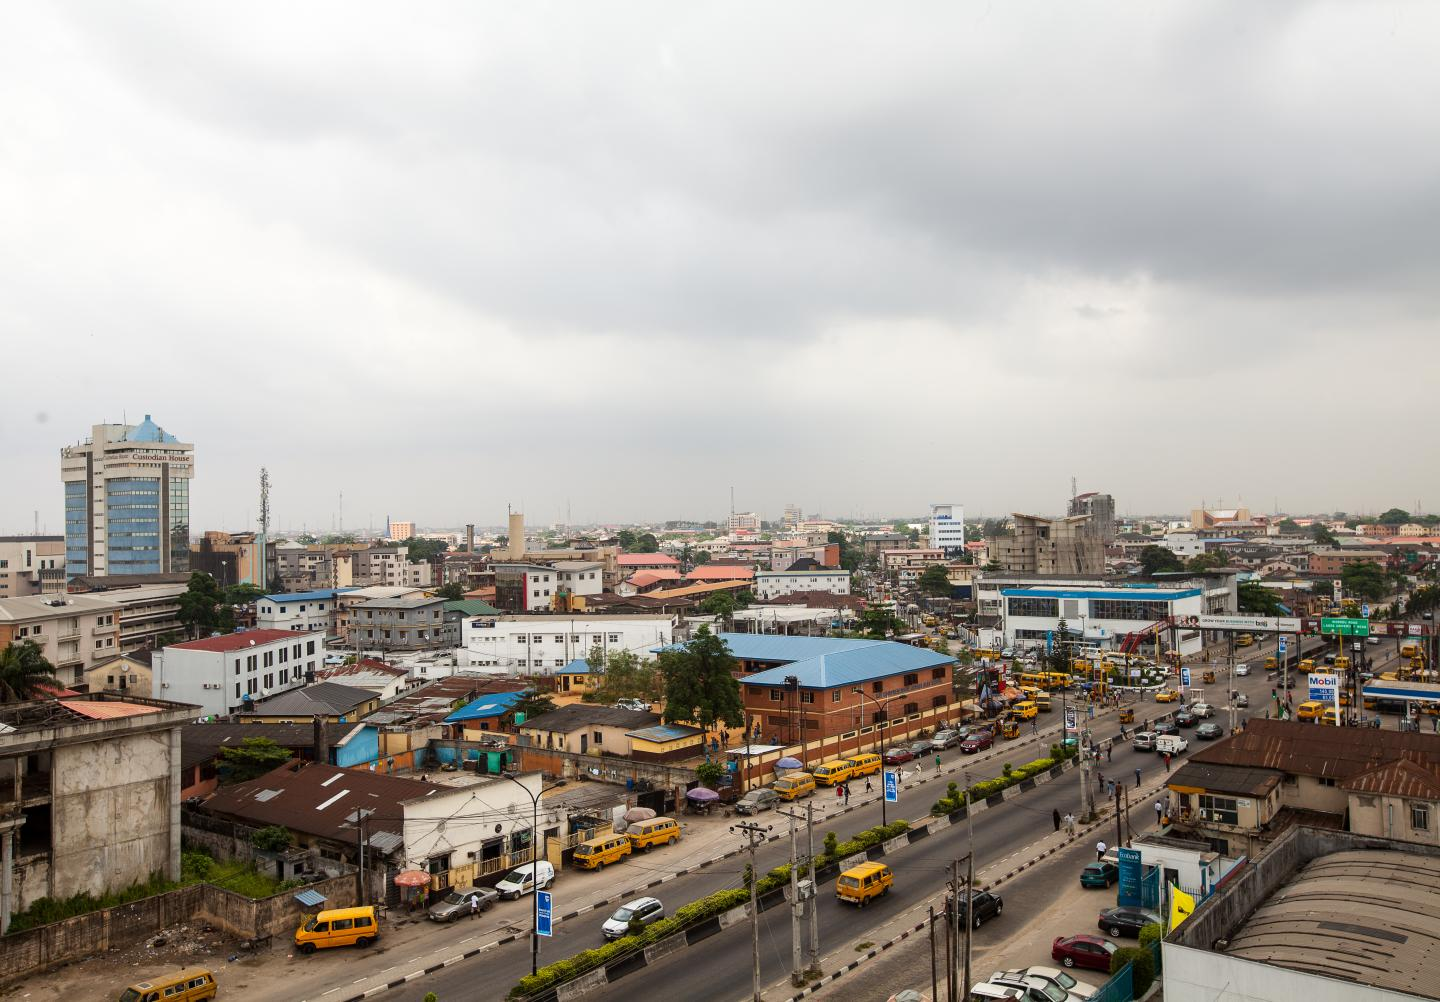 The Yaba district of Lagos, Nigeria's biggest city, has served as a hub for the West African country's budding tech and startup scene. Photo: ADEOLA OLAGUNJU